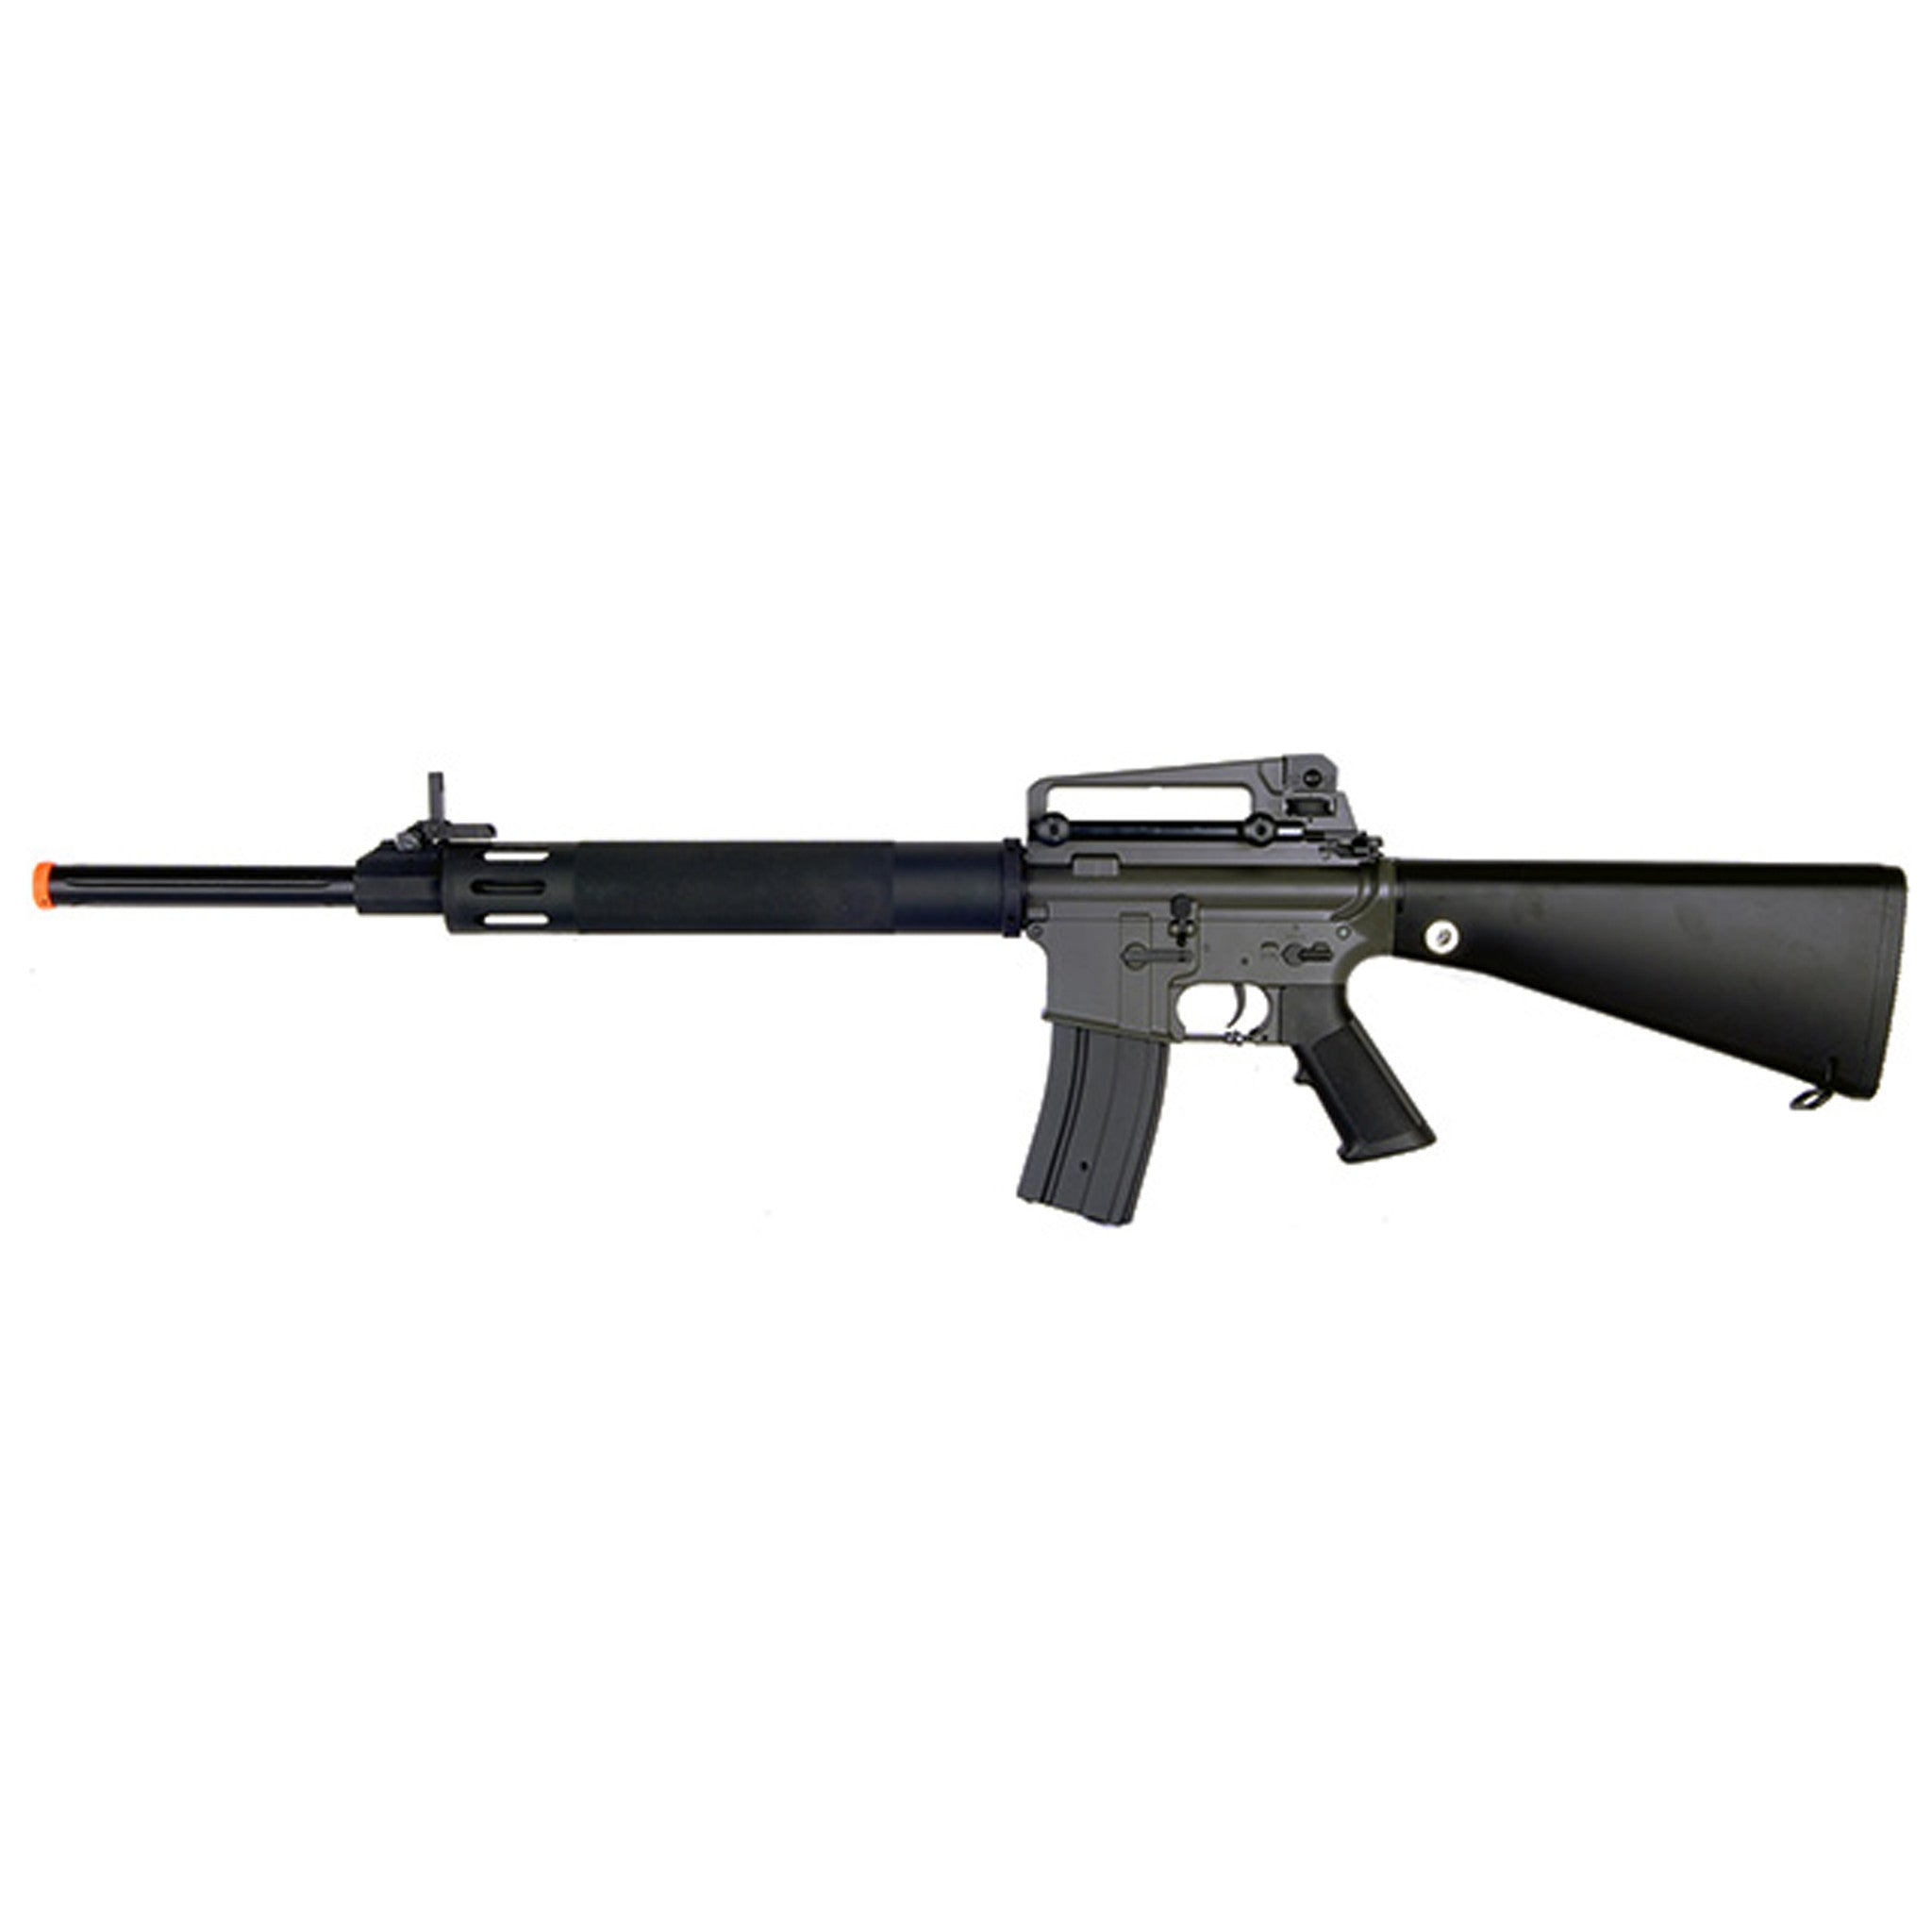 JG M16 UFC - -Electric Automatic -Firing Modes: Semi-automatic and Full-automatic -Muzzle Velocity: 390-410 FPS -Magazine: 300-round high capacity (gear wind-up) -Gearbox: Full metal -Barrel: Full metal -Hop-up: Adjustable